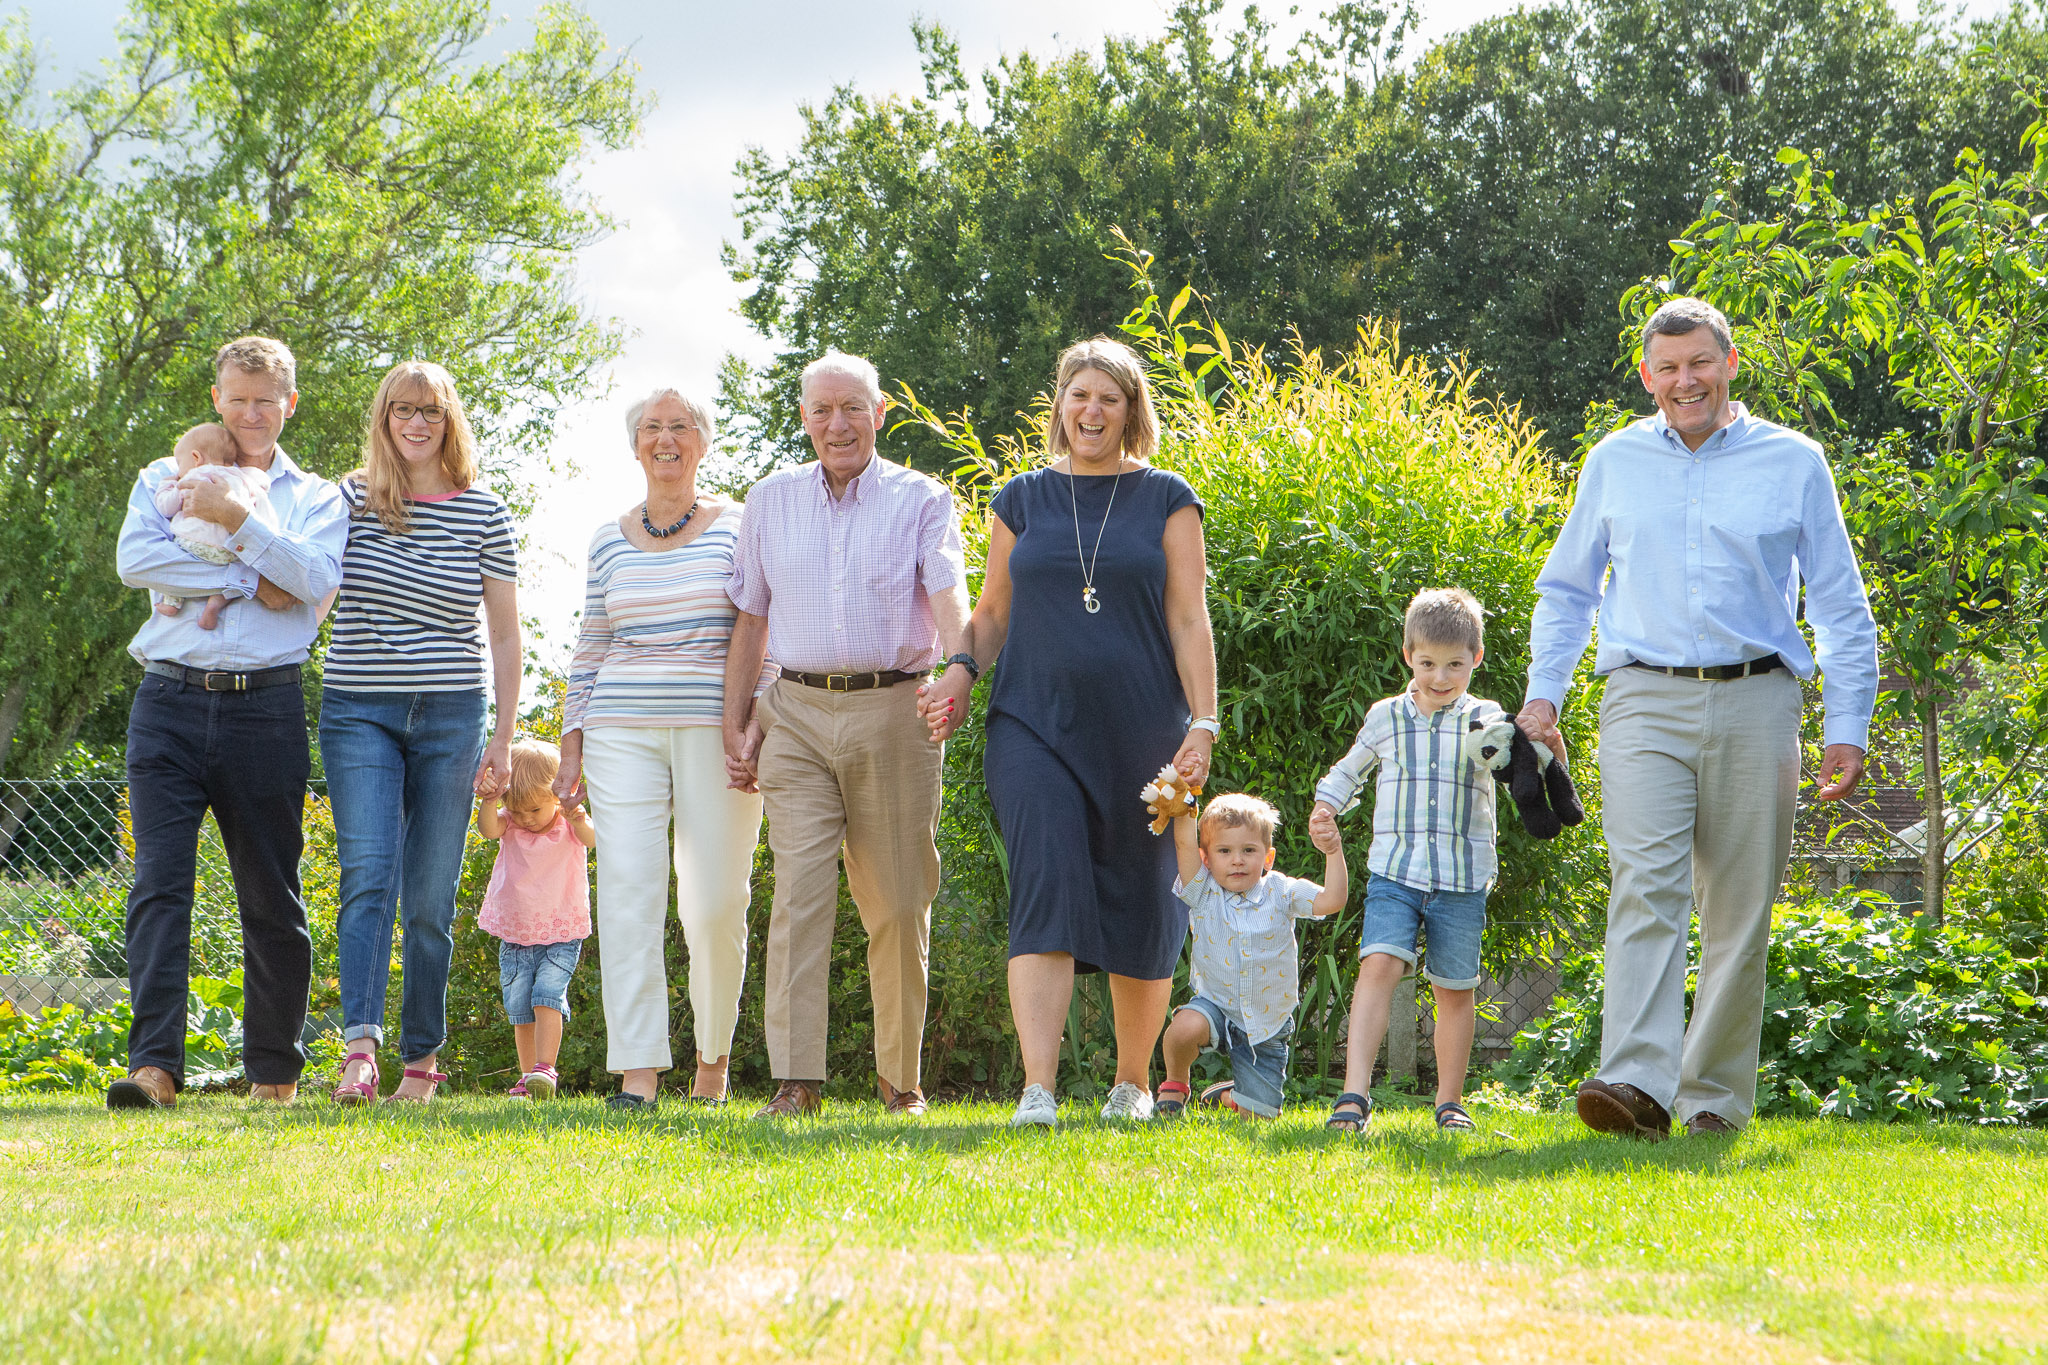 Smiley Day Photography, family photography, Surrey, Hampshire, Guildford